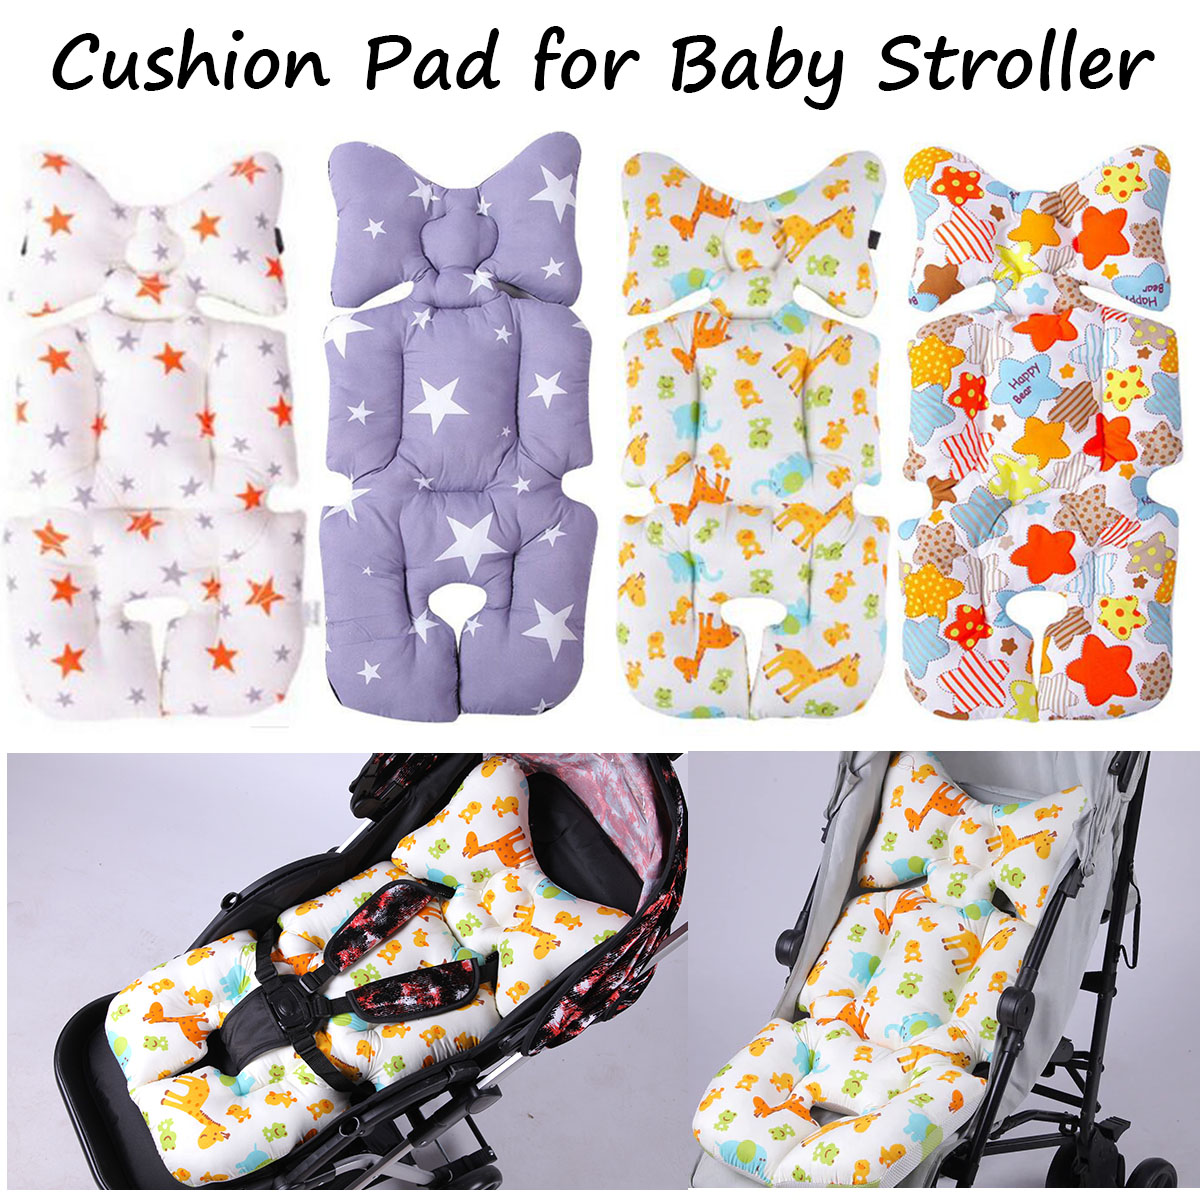 Activity & Gear Strollers Accessories Baby Stroller Cotton Cushion Seat Cover Mat Breathable Soft Car Pad Pushchair Urine Pad Liner Cartoon Star Mattress Baby Cart